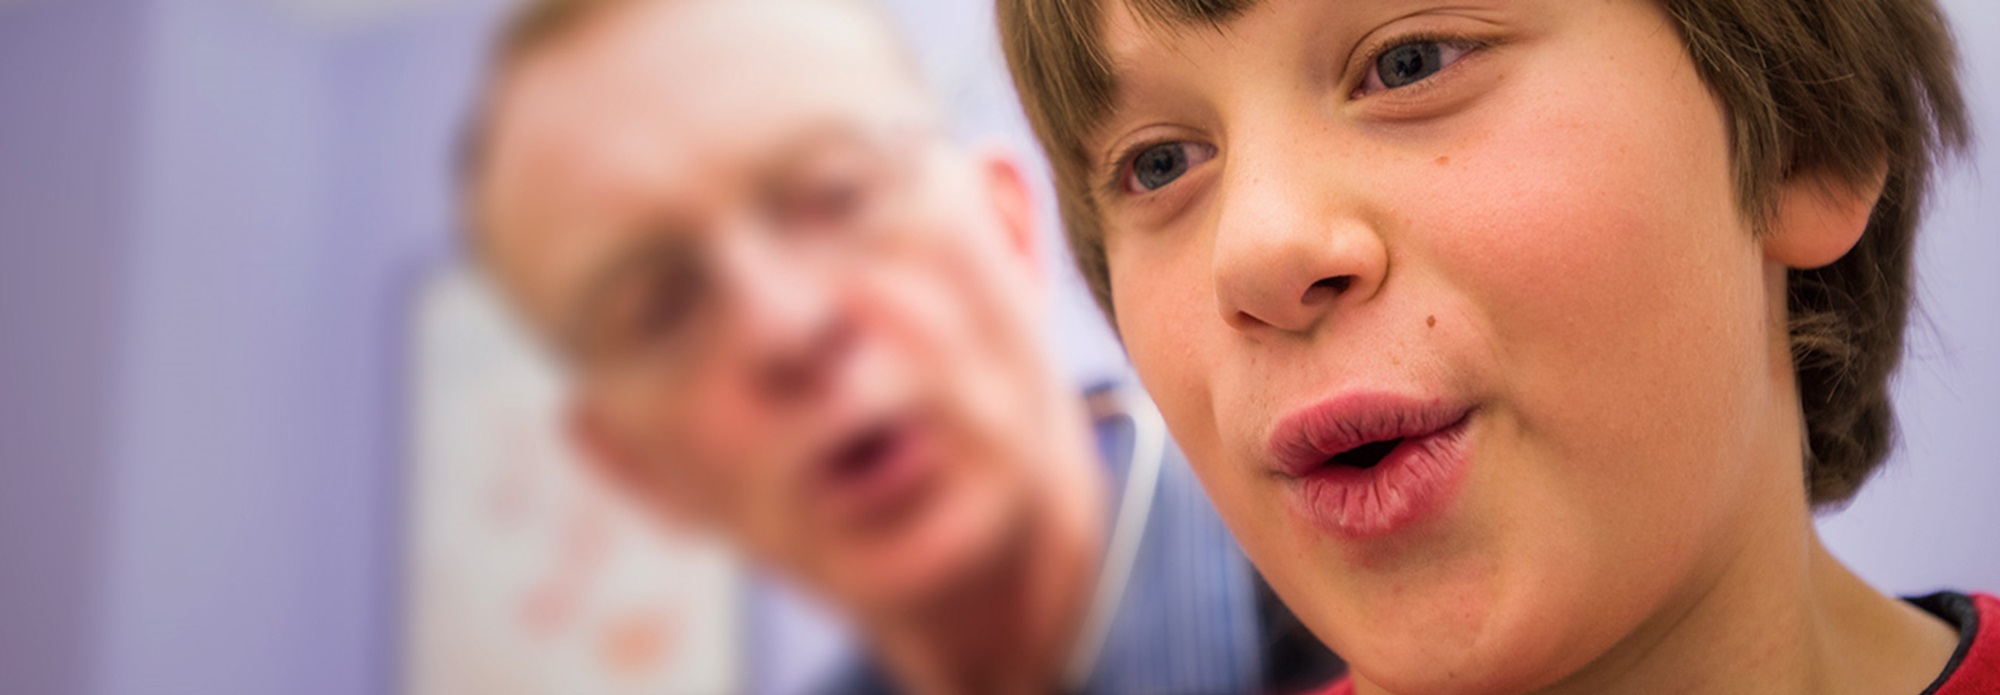 A boy with brown hair breathes out while his doctor watches in the background.